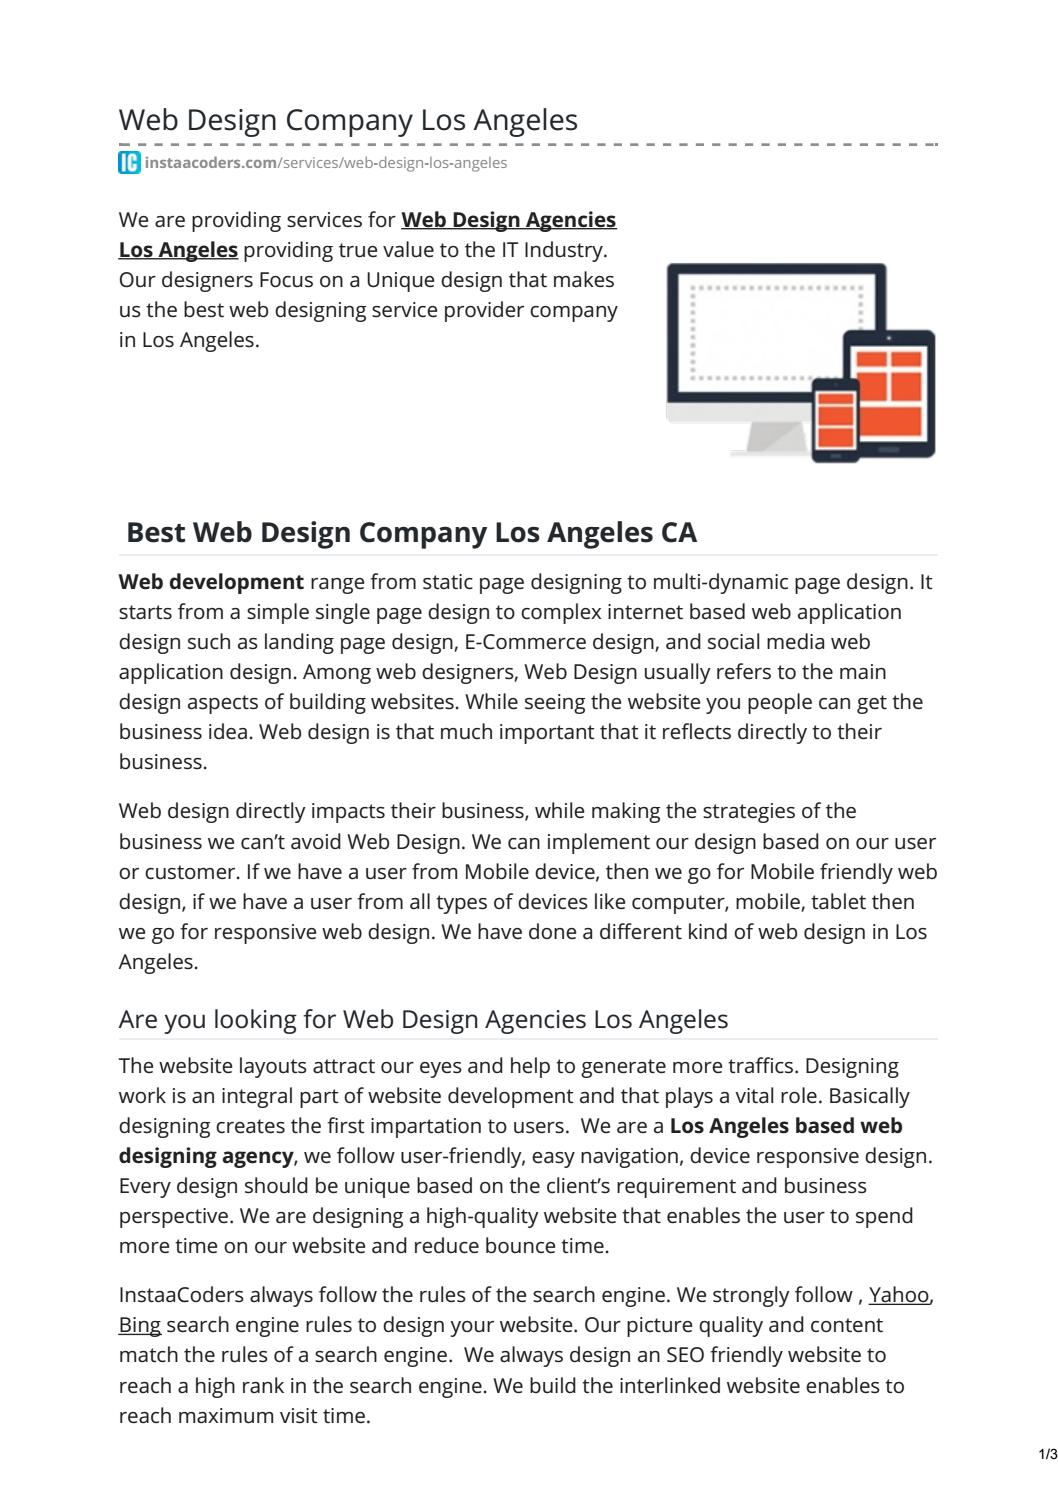 Best 5 Web Design Agencies Los Angeles by InstaaCoders Technologies